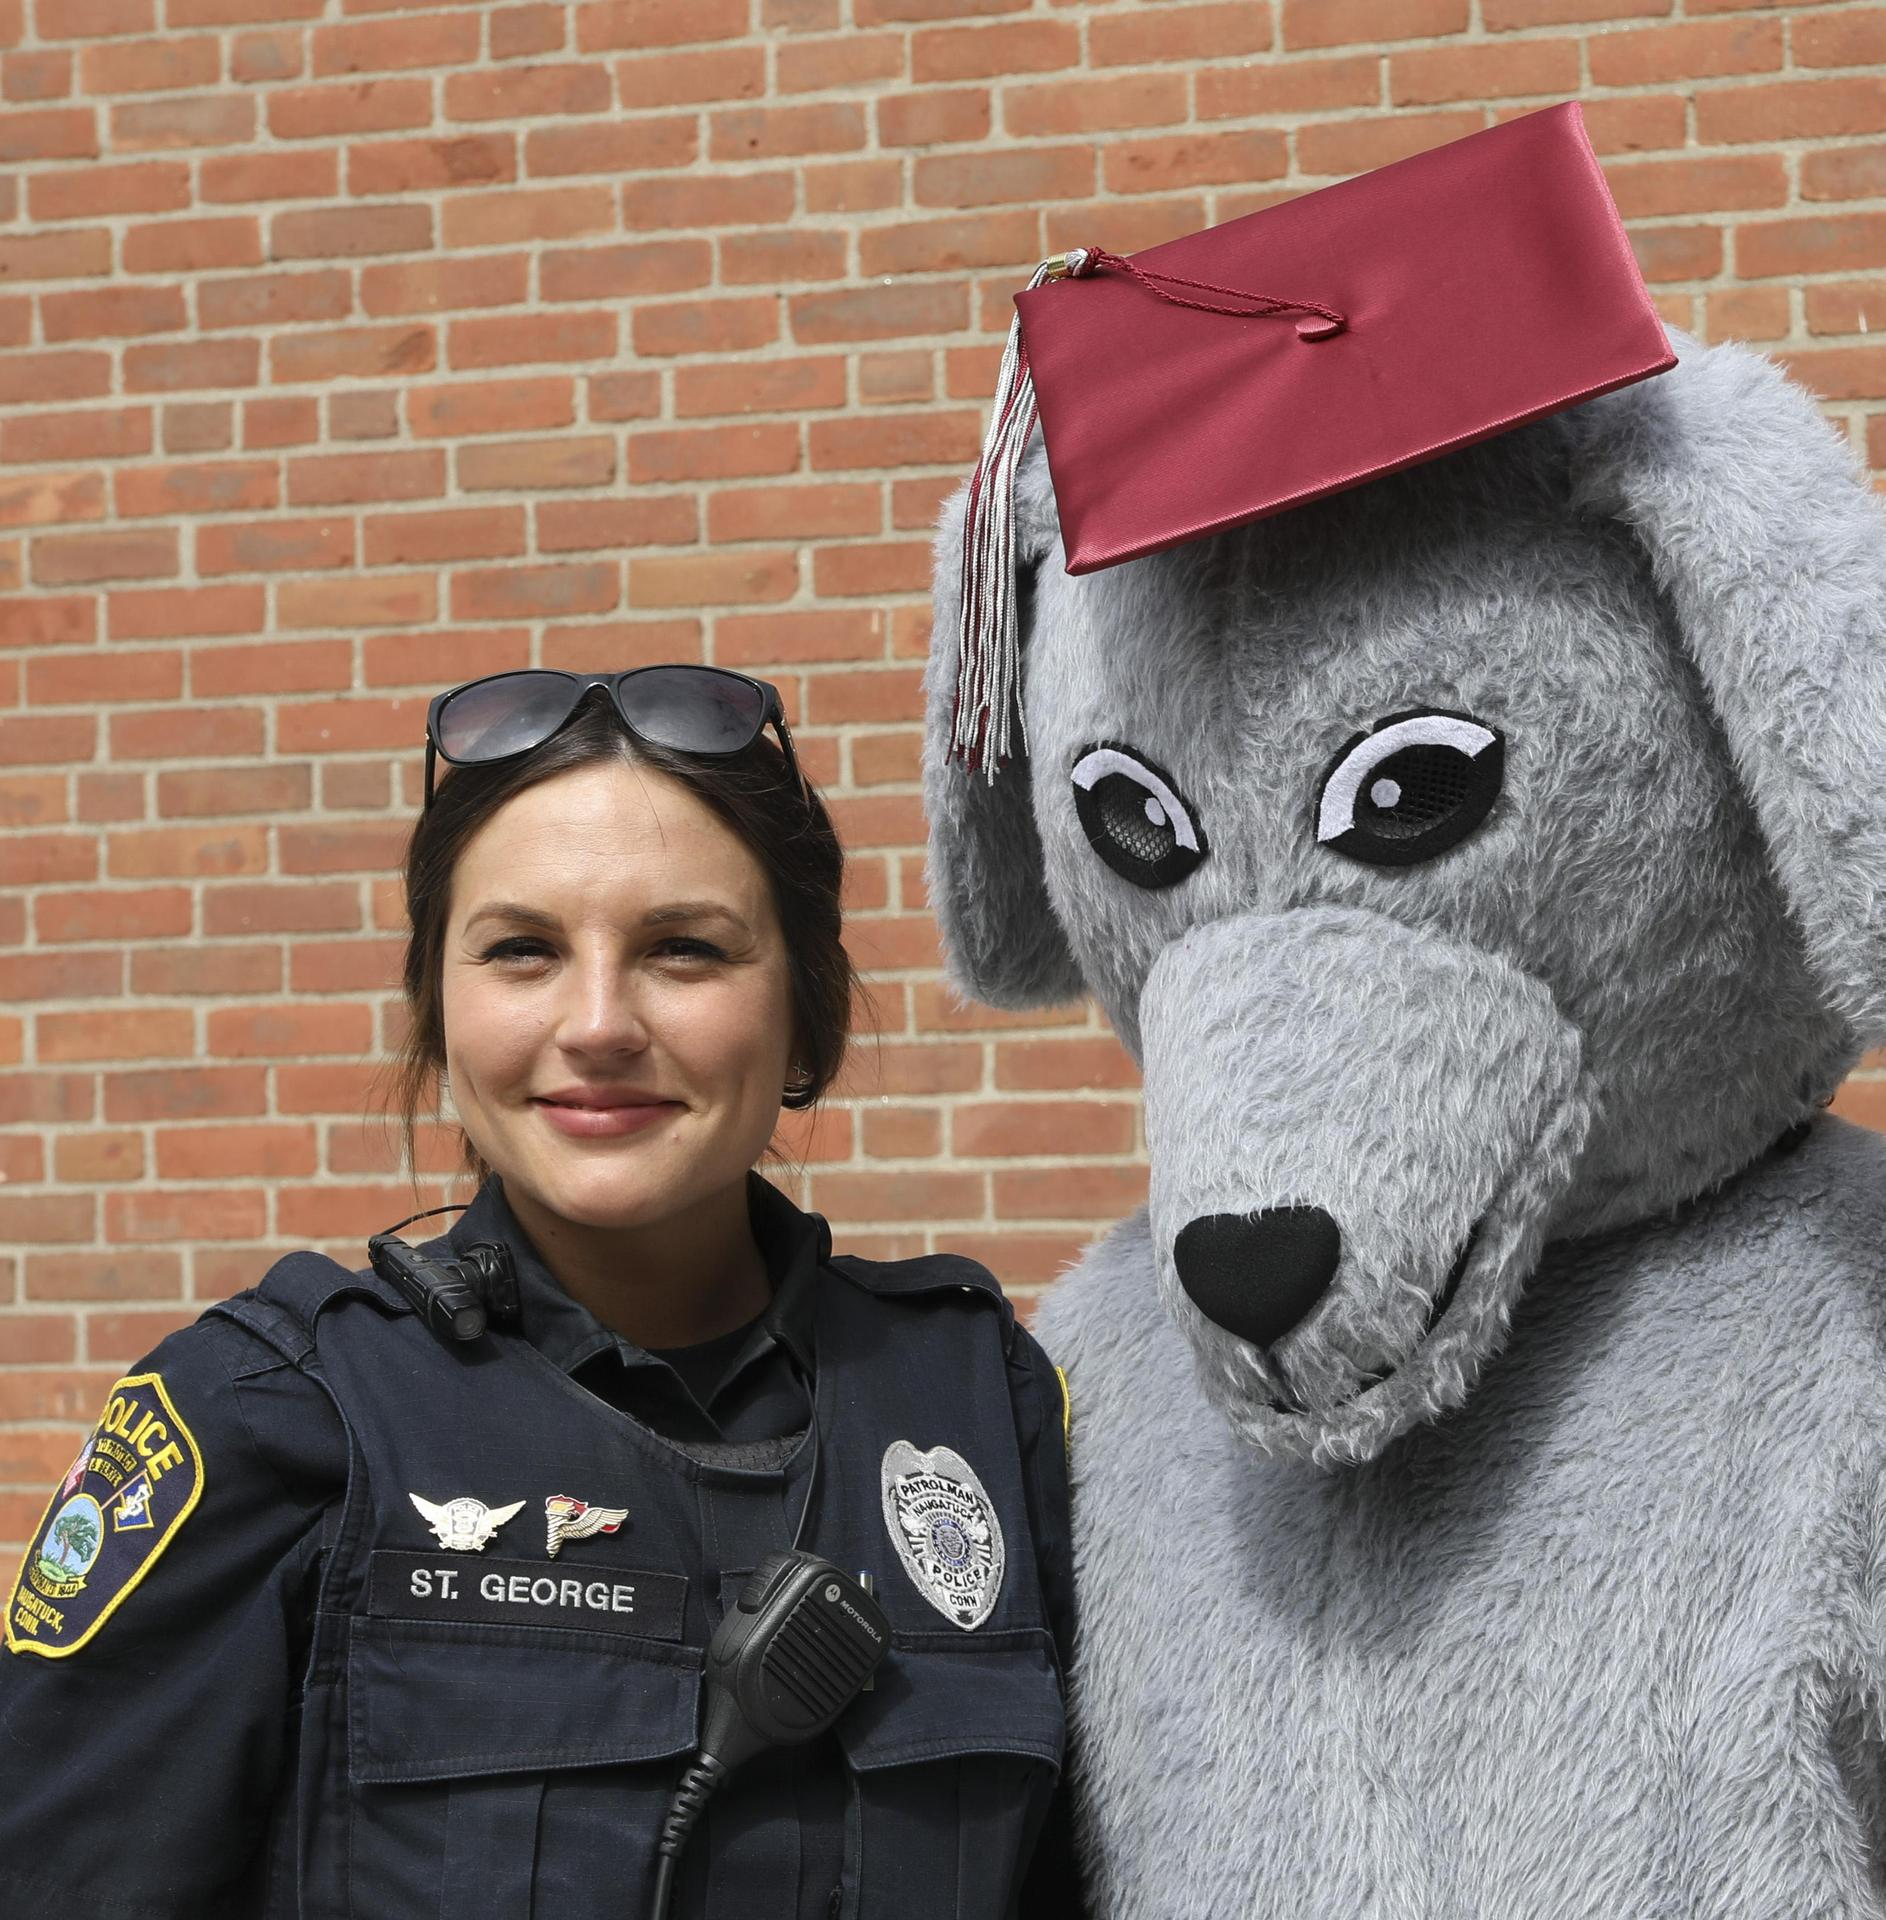 Officer St. George with greyhound mascot